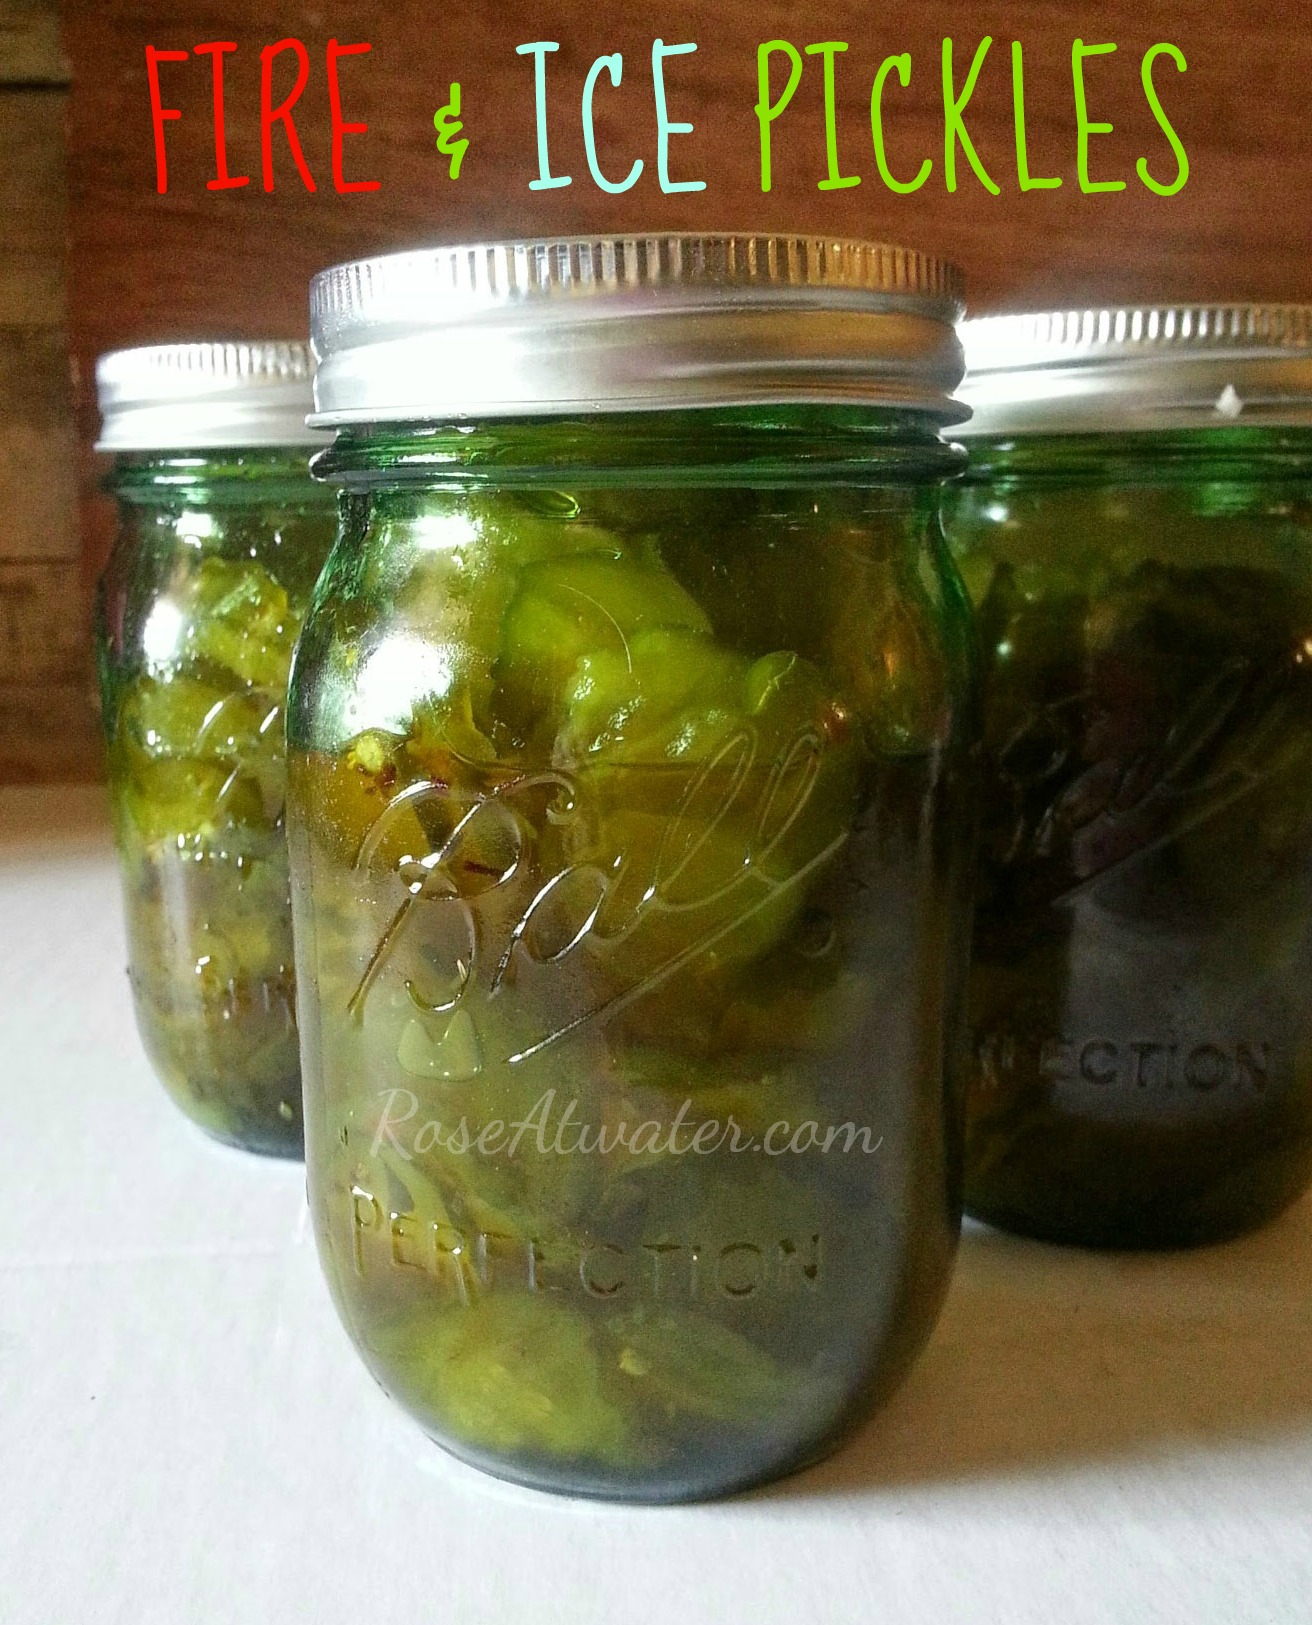 Fire & Ice Pickles